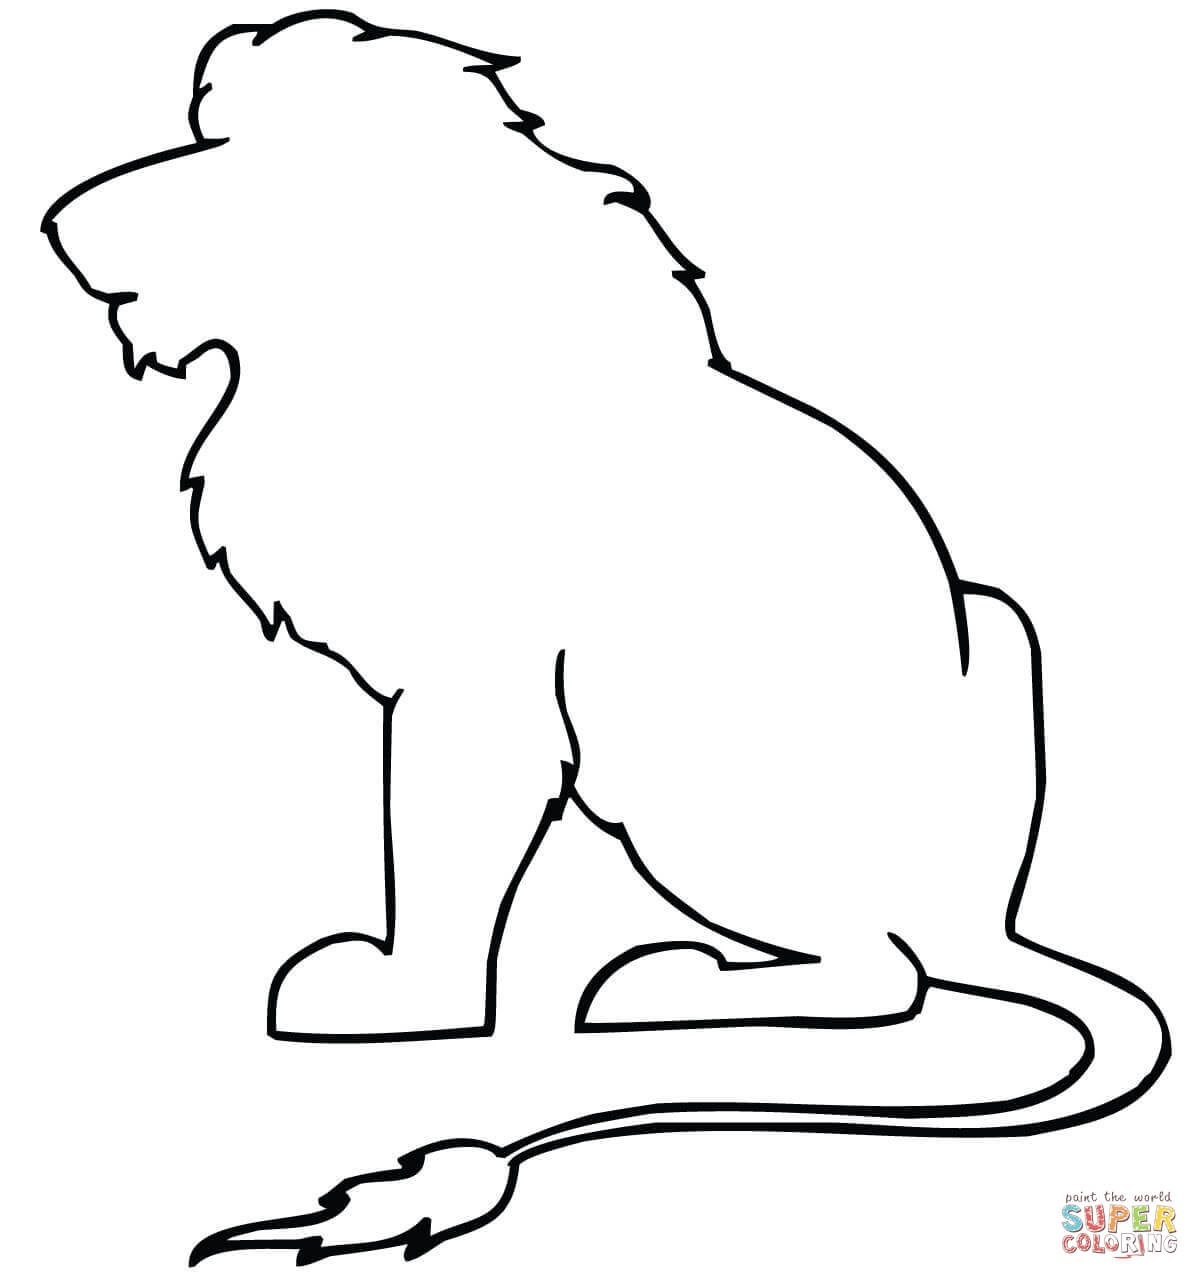 Animal Outlines | Free Download Best Animal Outlines On Clipartmag - Free Printable Arty Animal Outlines